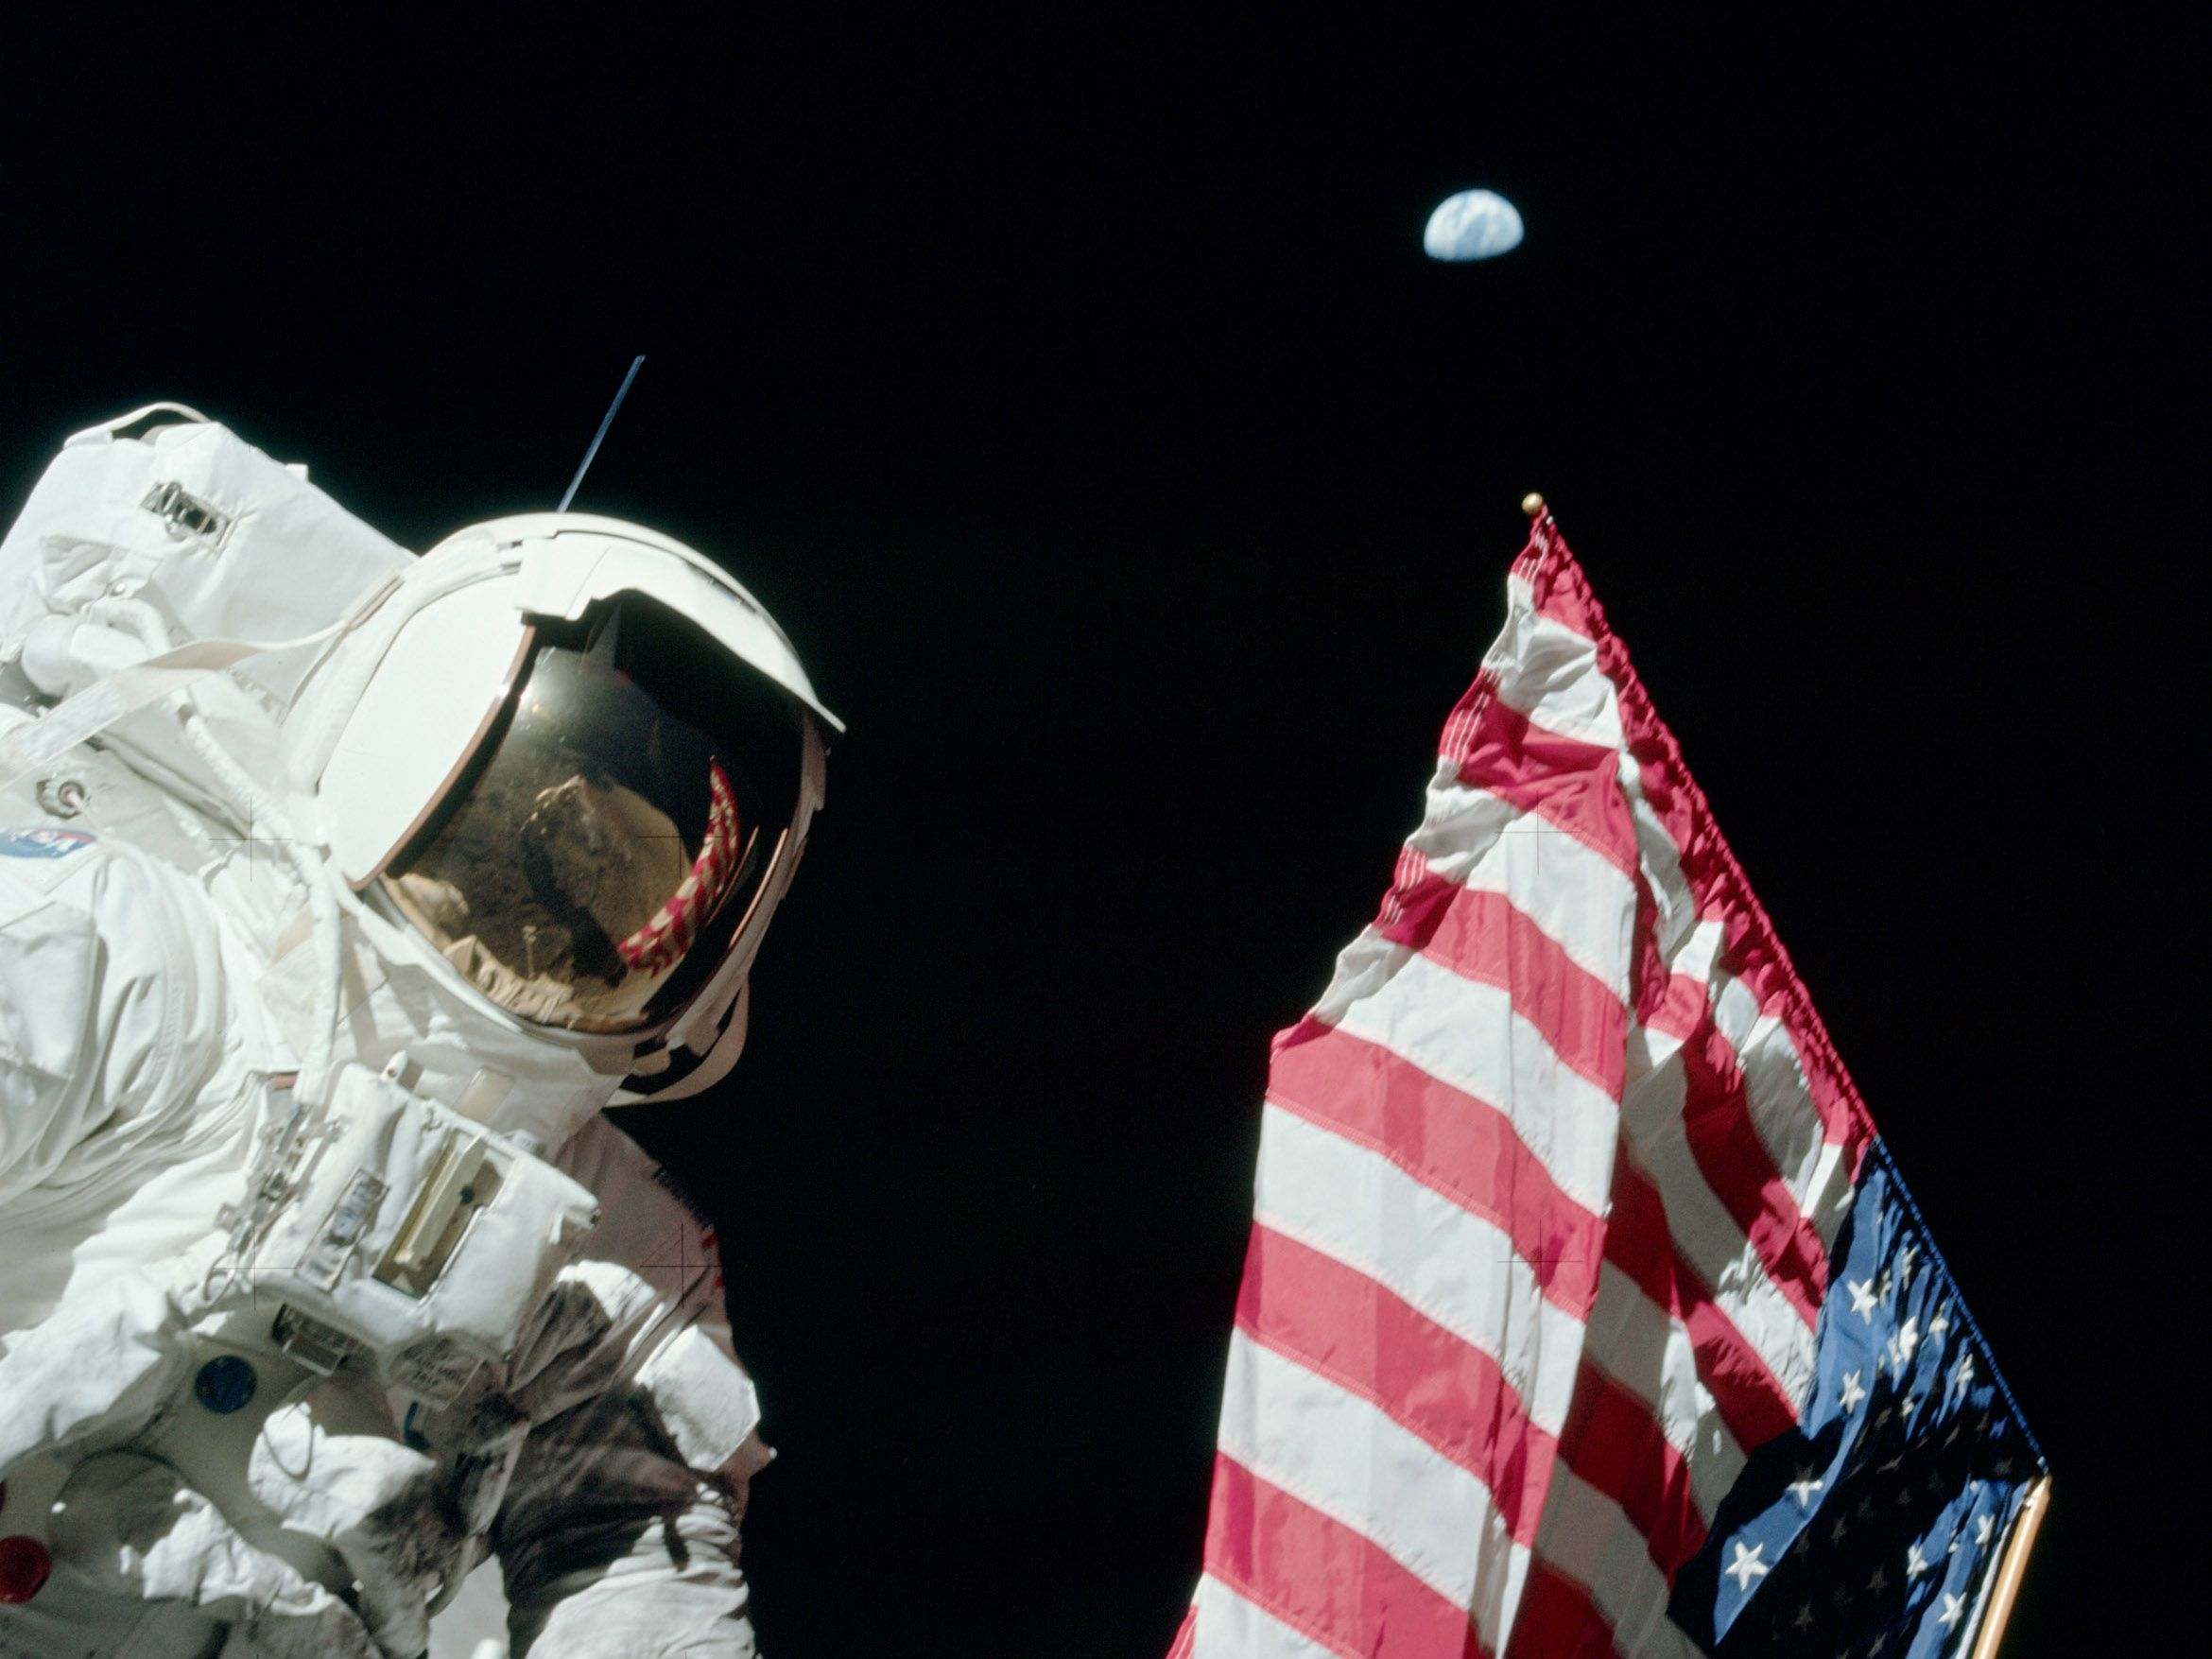 06_06_moon_astronaut_nasa